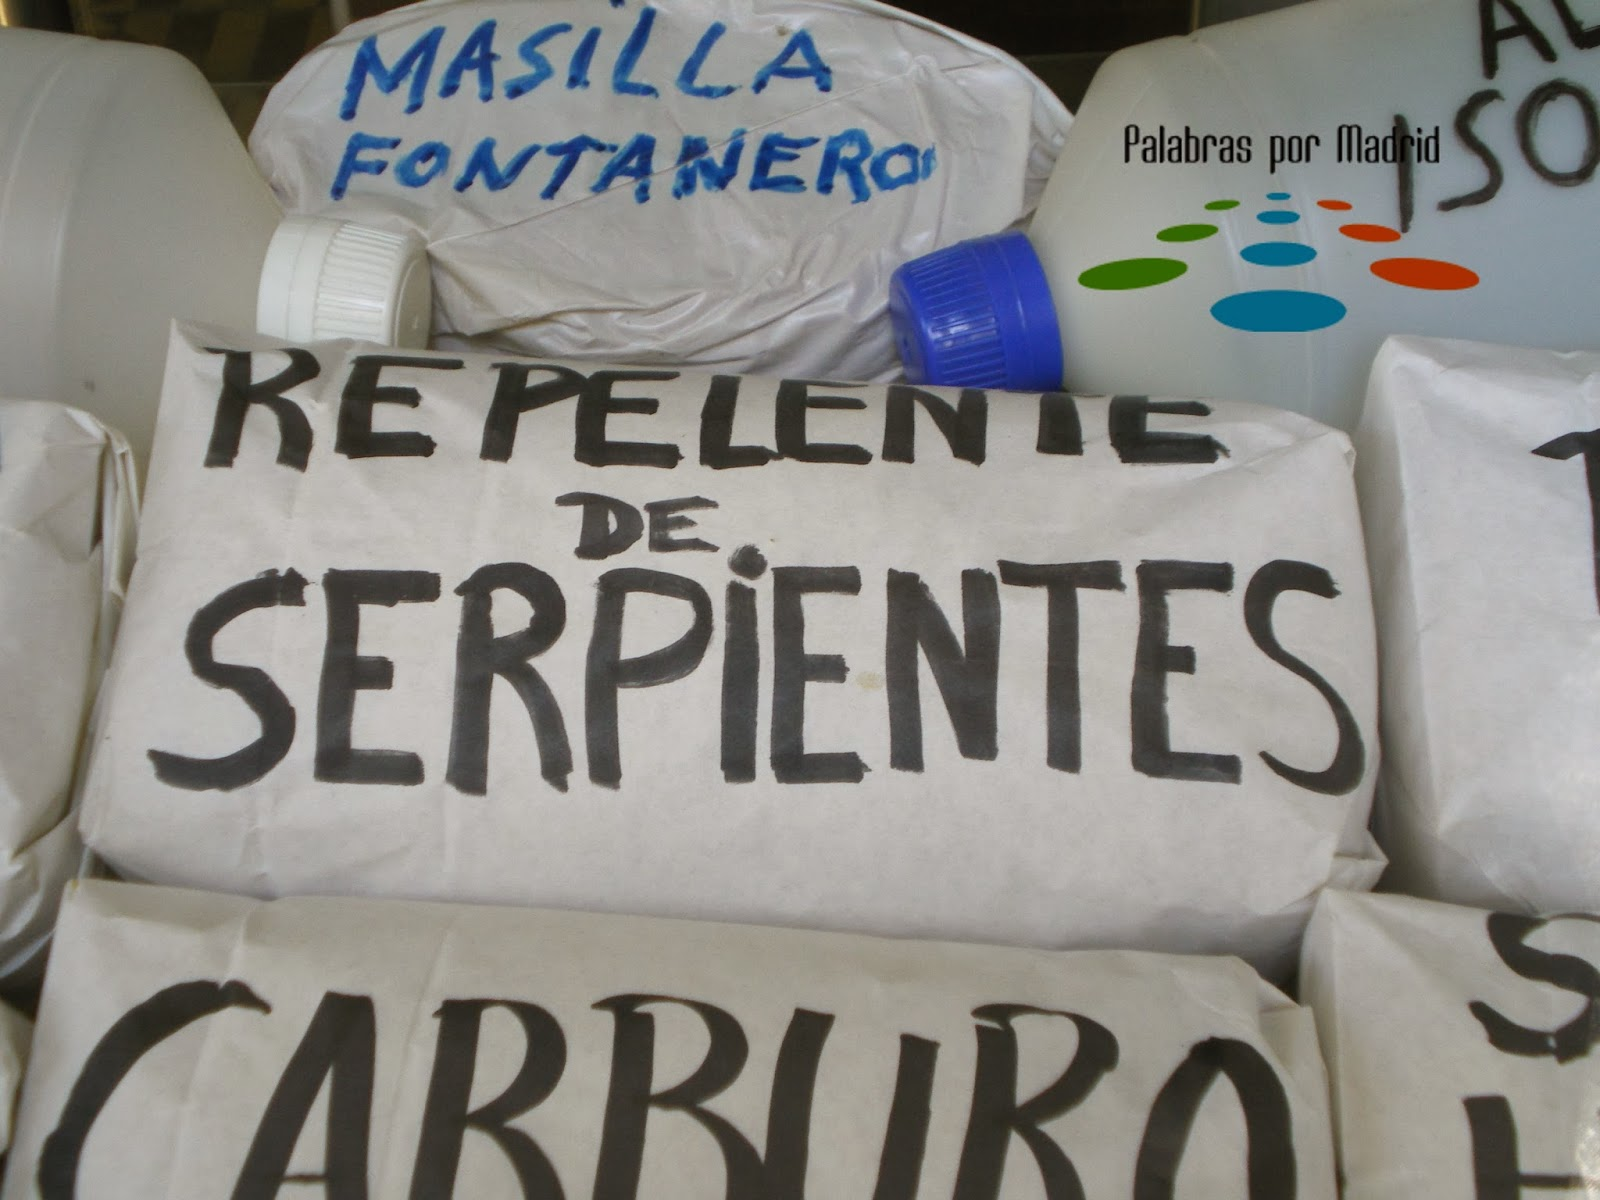 repelente de serpientes